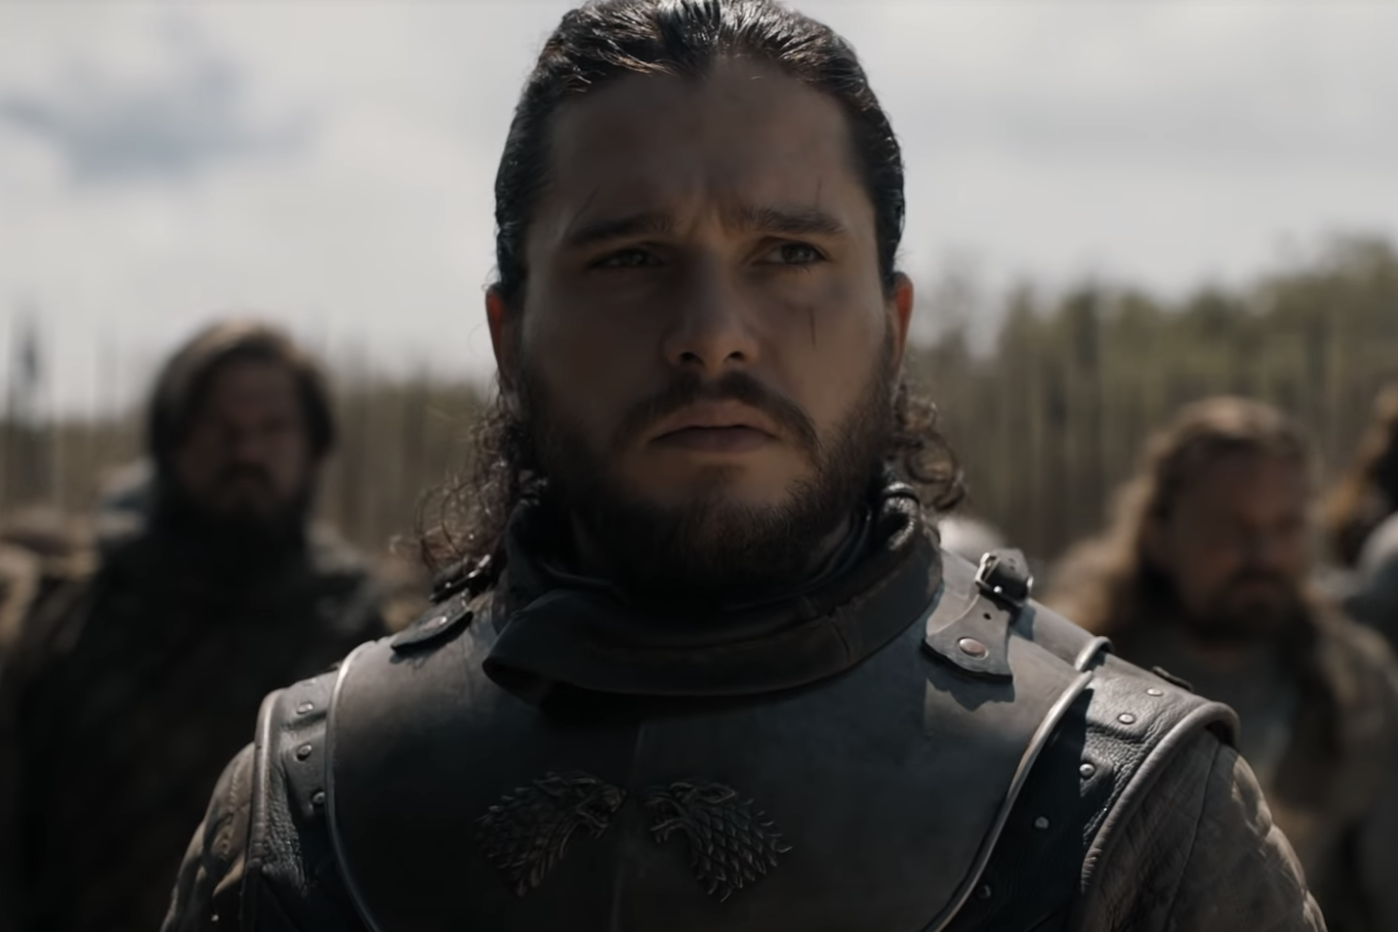 Game of Thrones star Kit Harington was 'pissed off' he didn't kill Night King in season eight